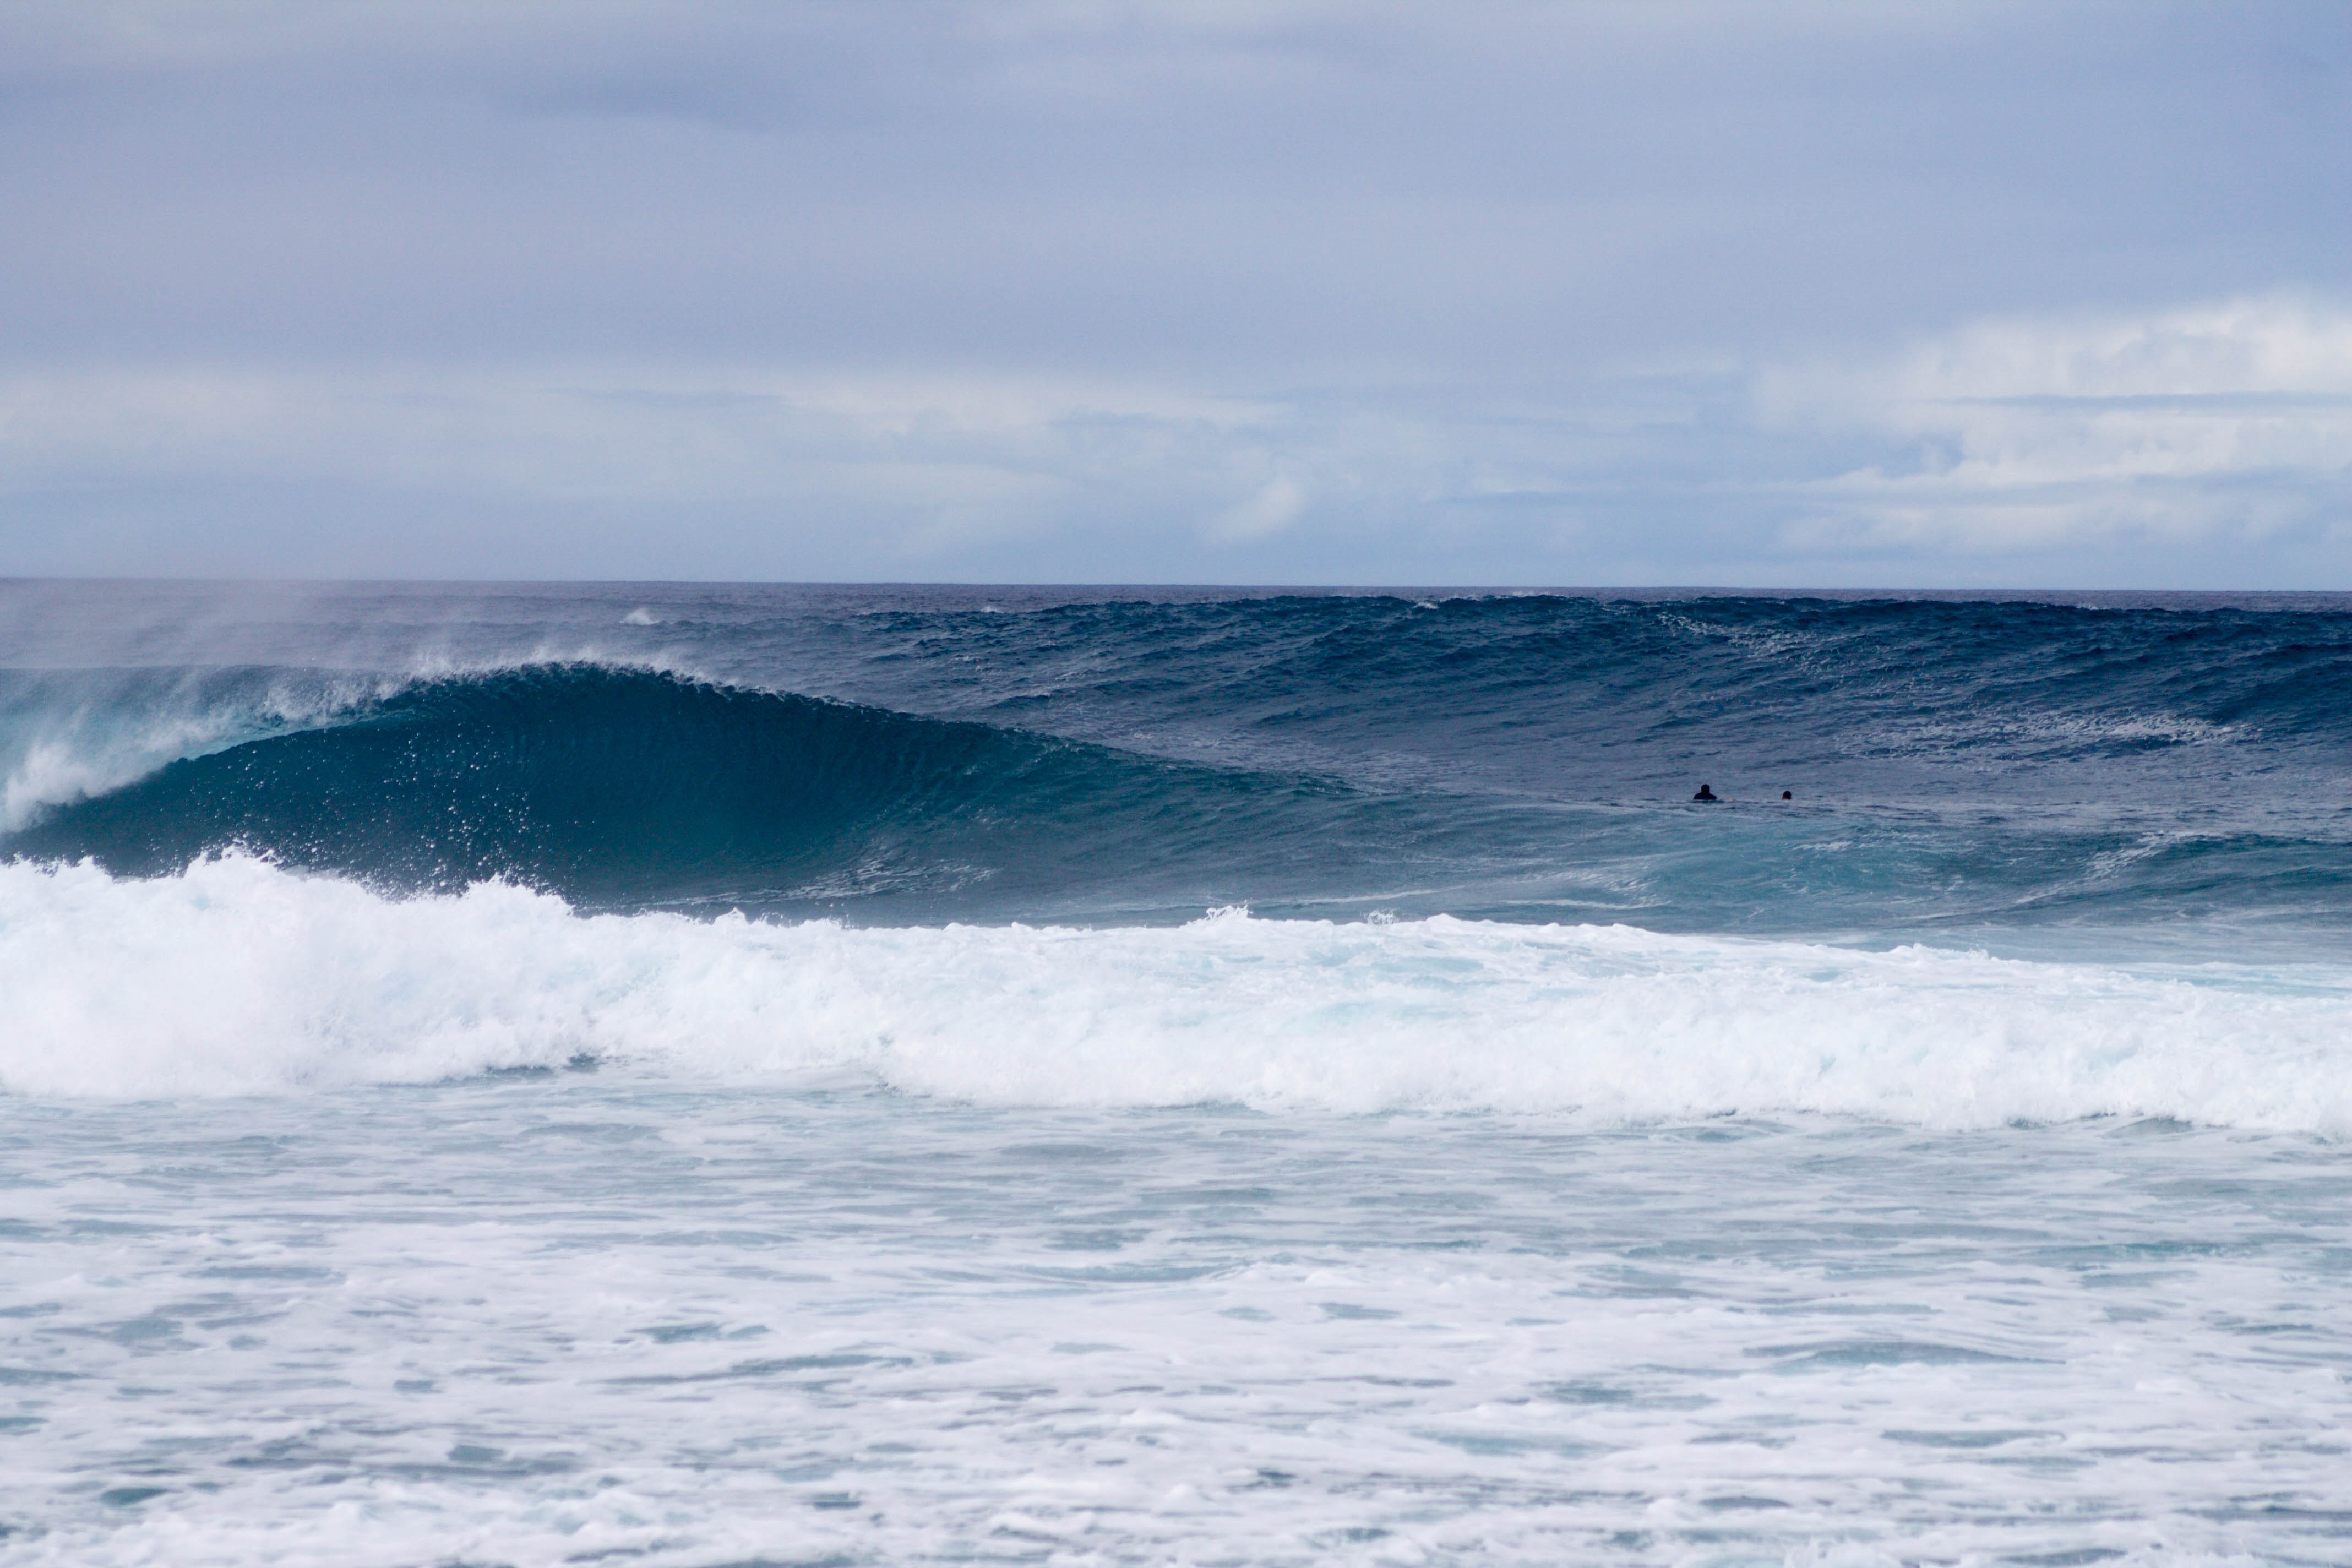 A large wave makes its way to the beach's shore.